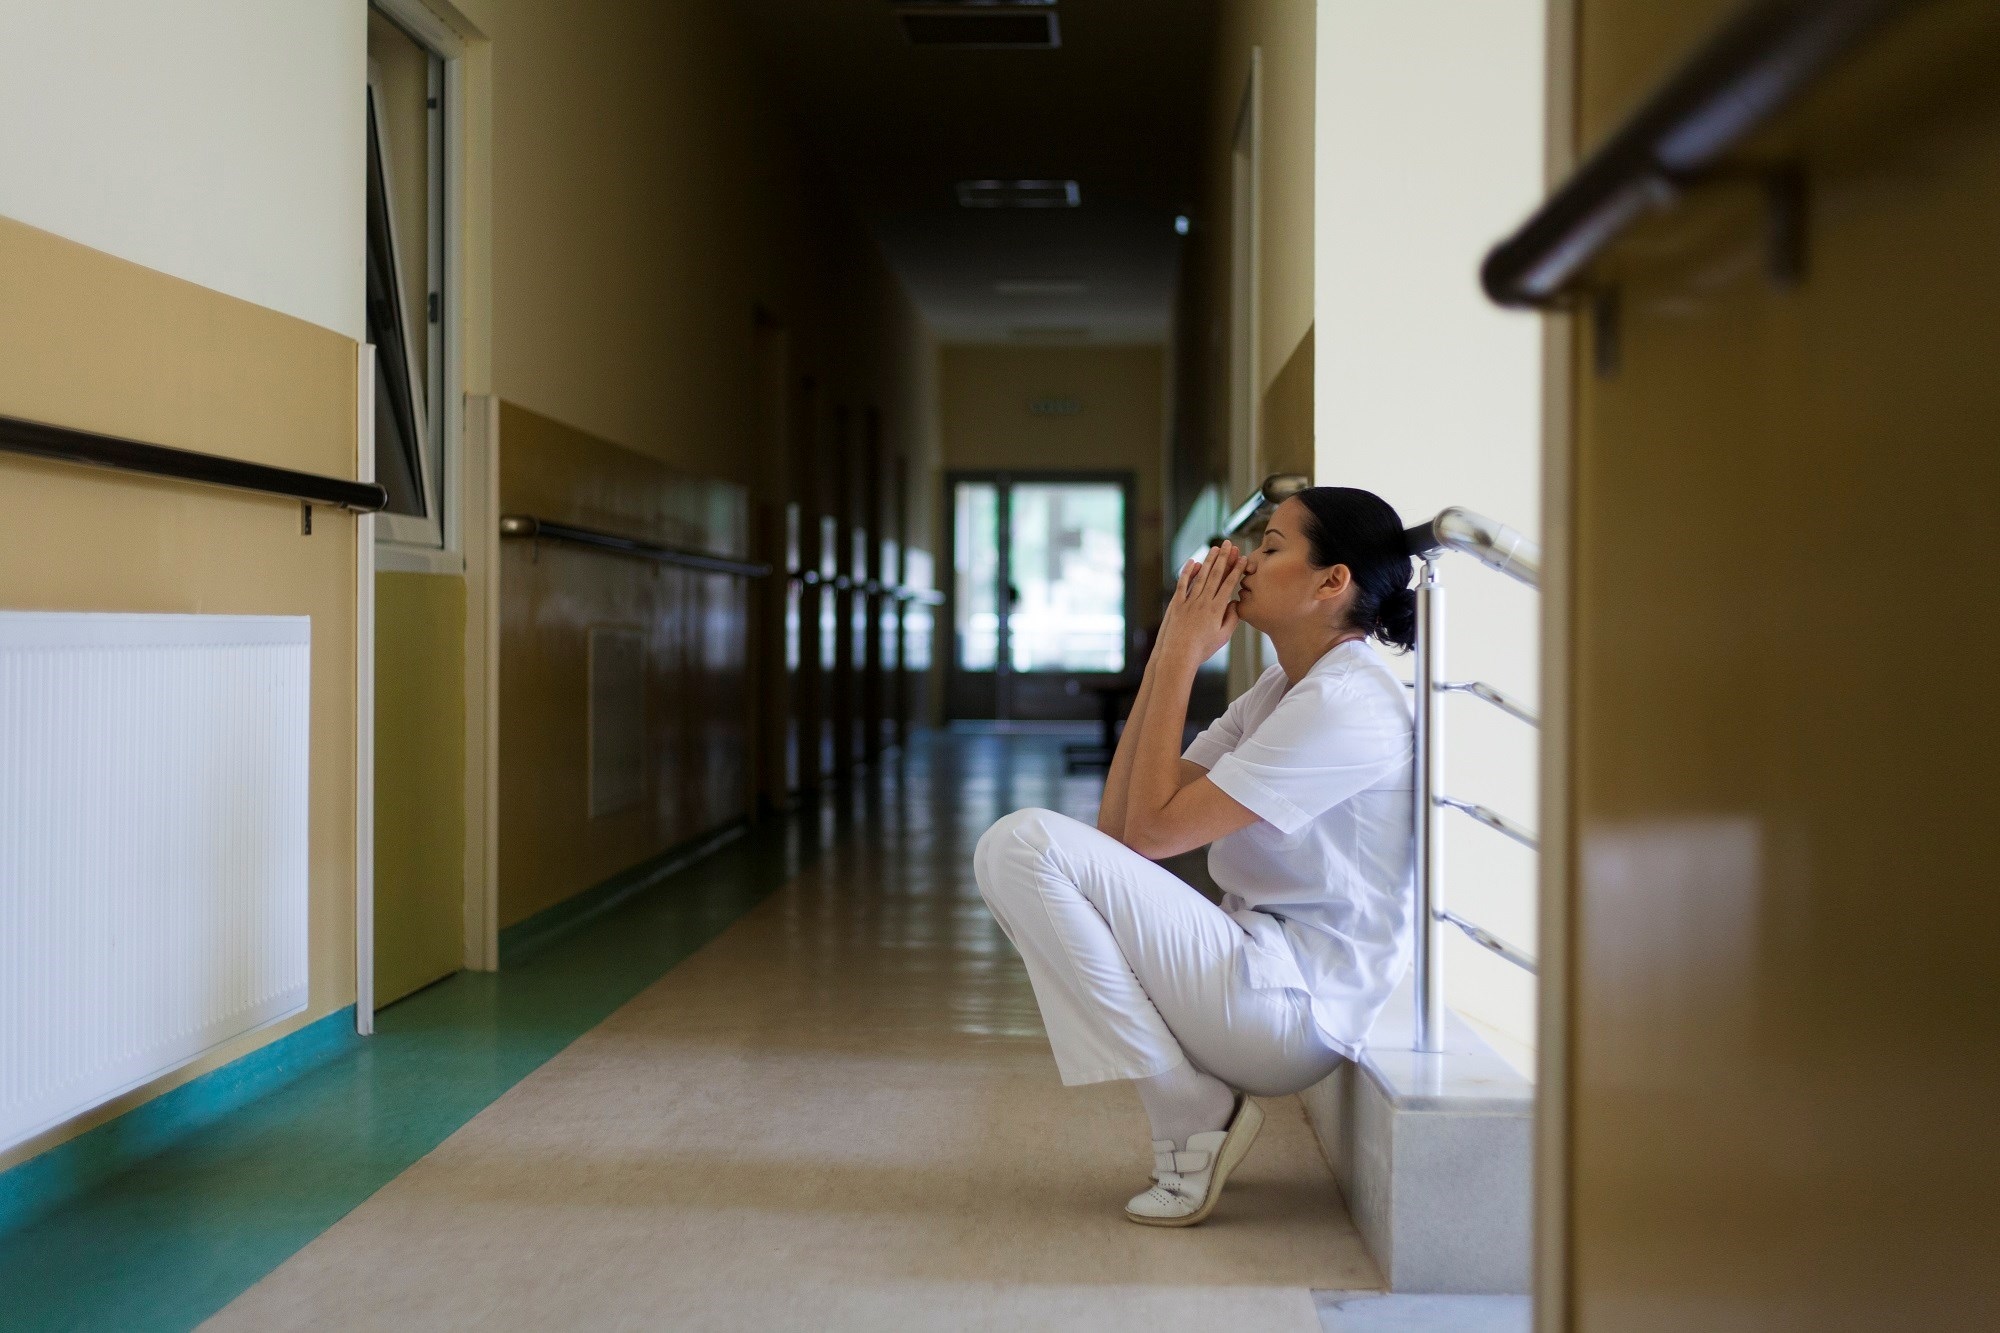 By collecting data on suicides by medical students, residents, and fellows, the American Medical Association hopes to identify ways to reduce suicides among physicians-in-training.